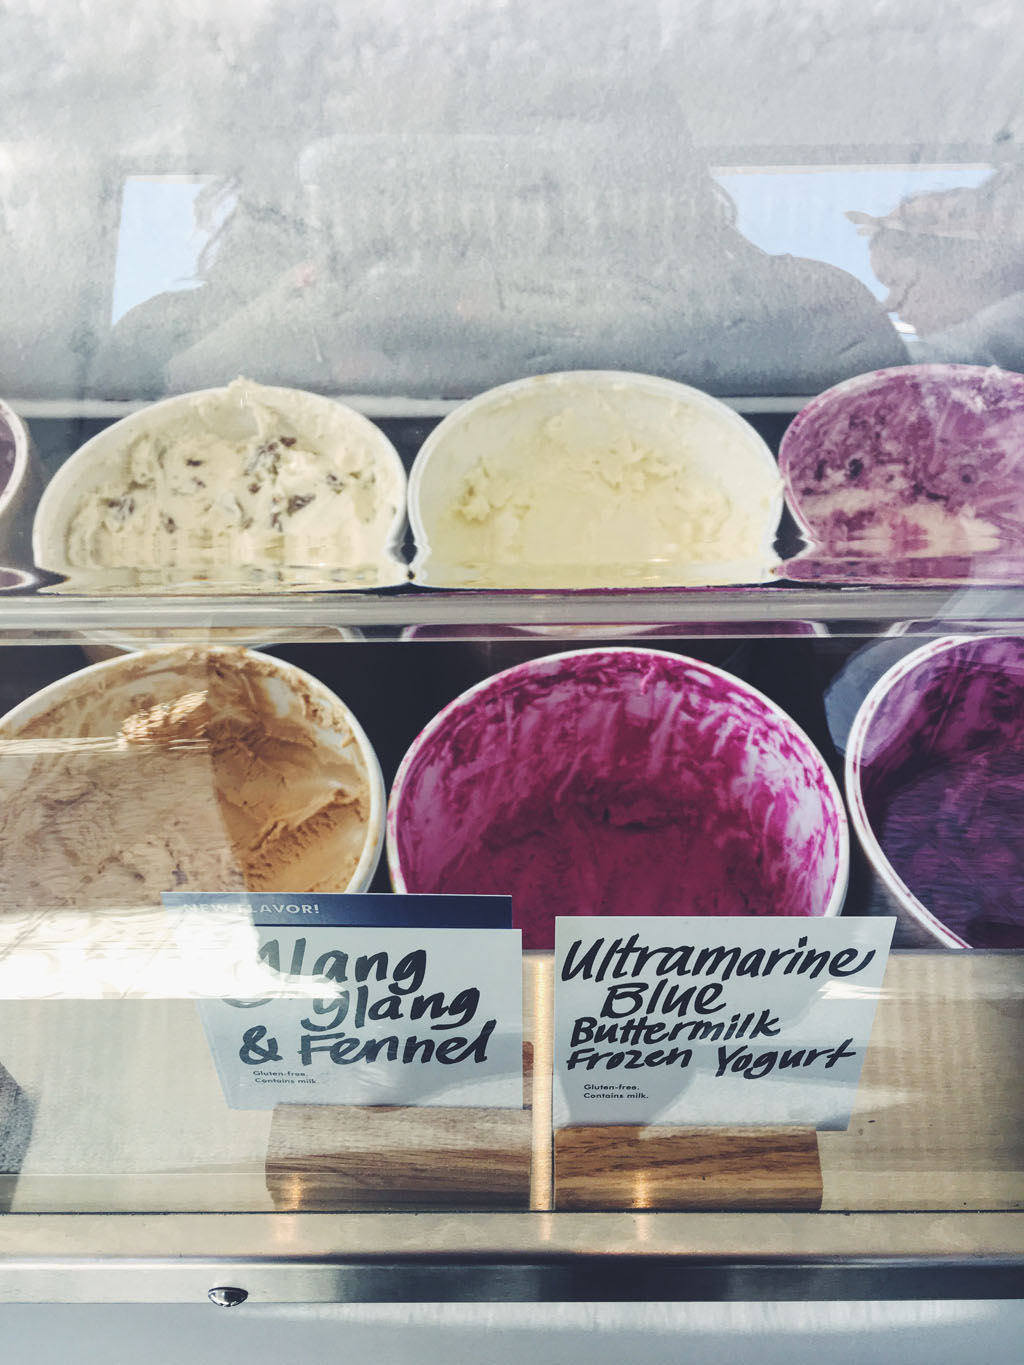 Some of Jeni's Splendid Ice Creams. Photo: Allison Ramirez. © J. Paul Getty Trust. All rights reserved